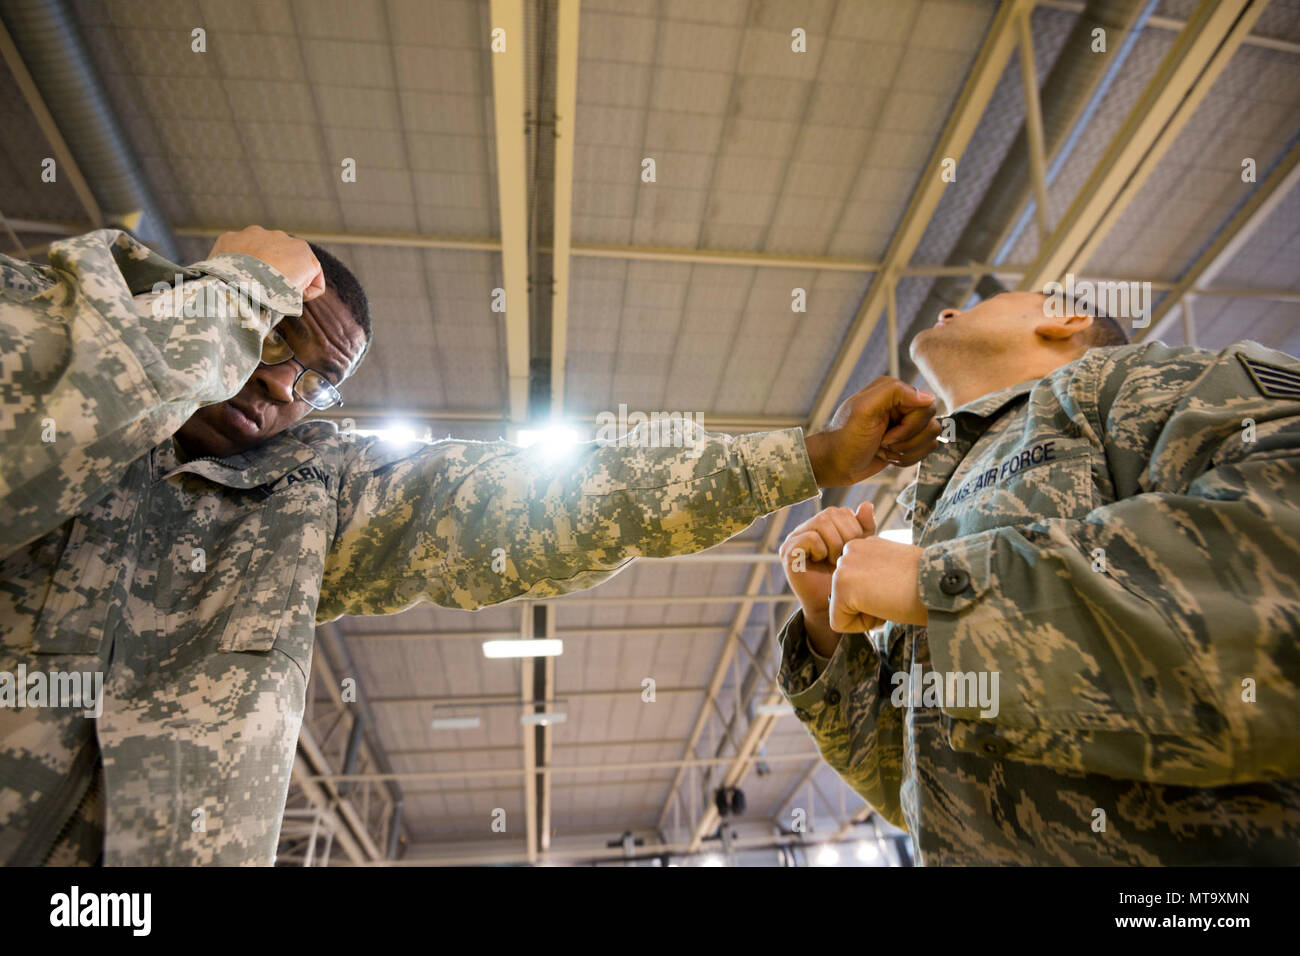 U.S. Army Sgt. Terrance Simmons, assigned to the Northern Law Center, 21st Theater Sustainment Command, demonstrates how to punch on U.S. Air Force Staff Sgt. Mario Huerta, assigned to the SACEUR Security Detachment, during the   Joint Tactical Combatives Course, on Chièvres Air Base, Belgium, March 9, 2018. - Stock Image